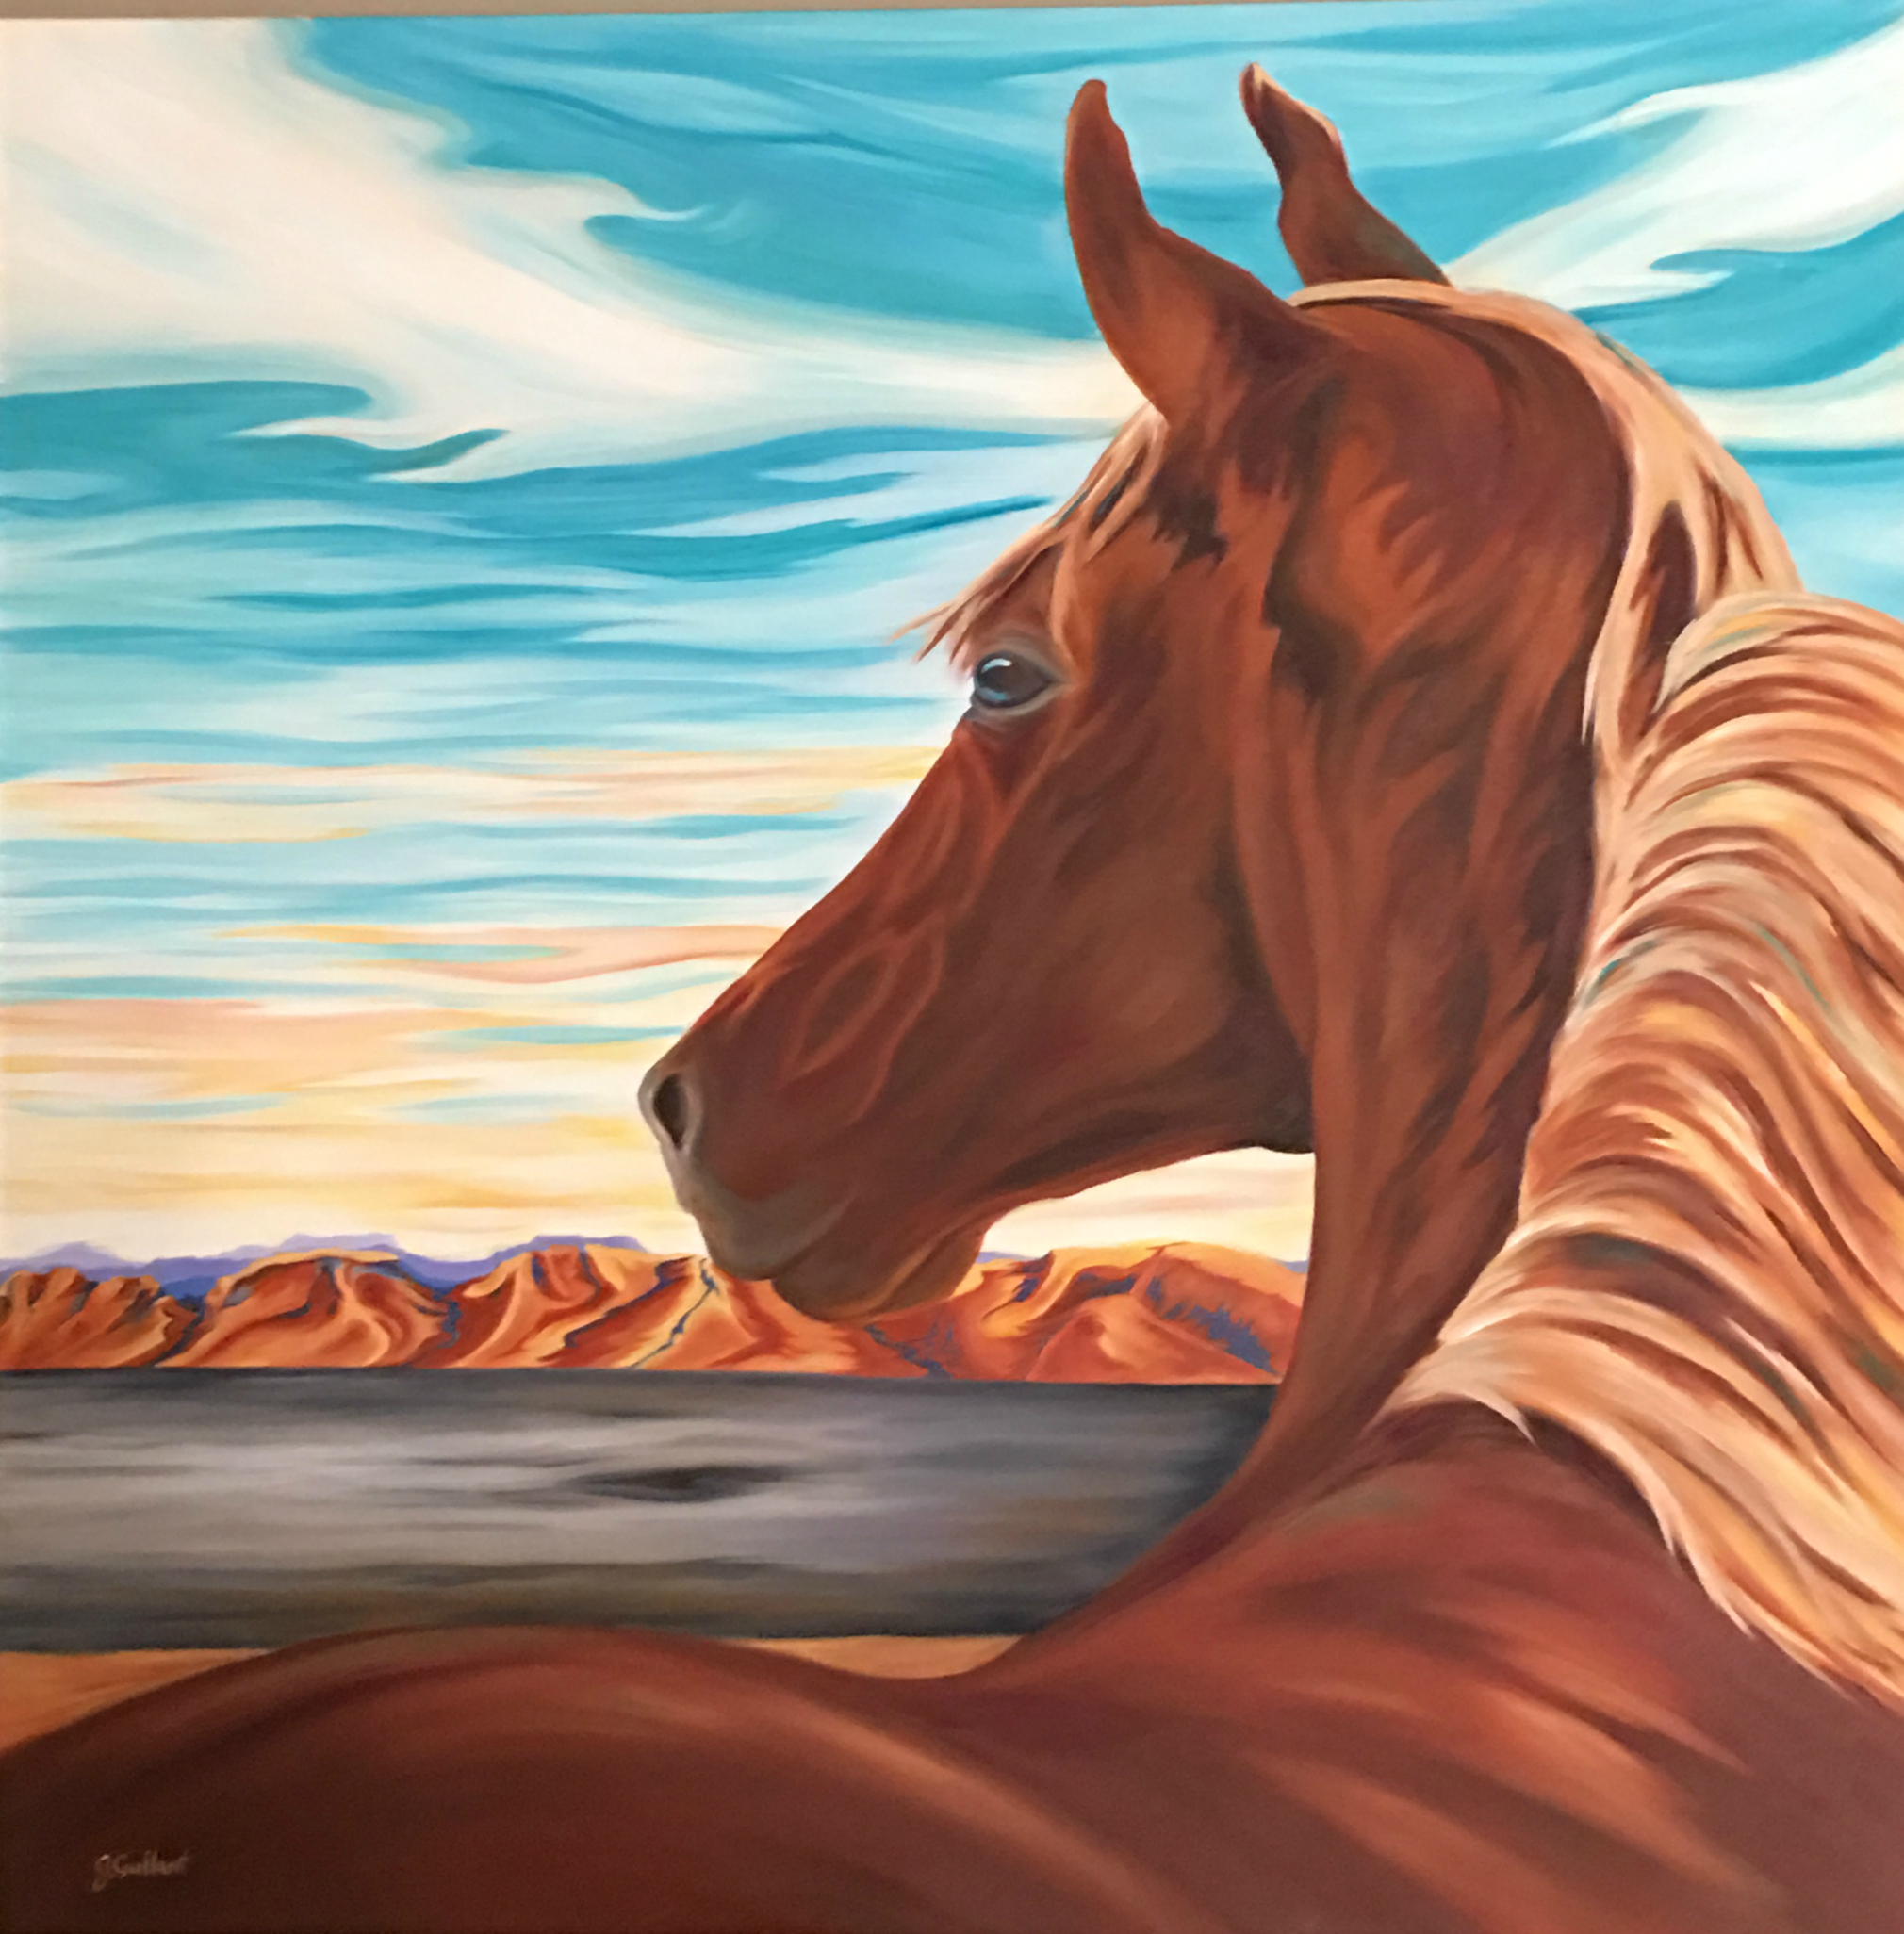 Canvas prints of horse, Unclaimed Freedom by Janice Gallant https://thecreationguild.com/decorator-prints/